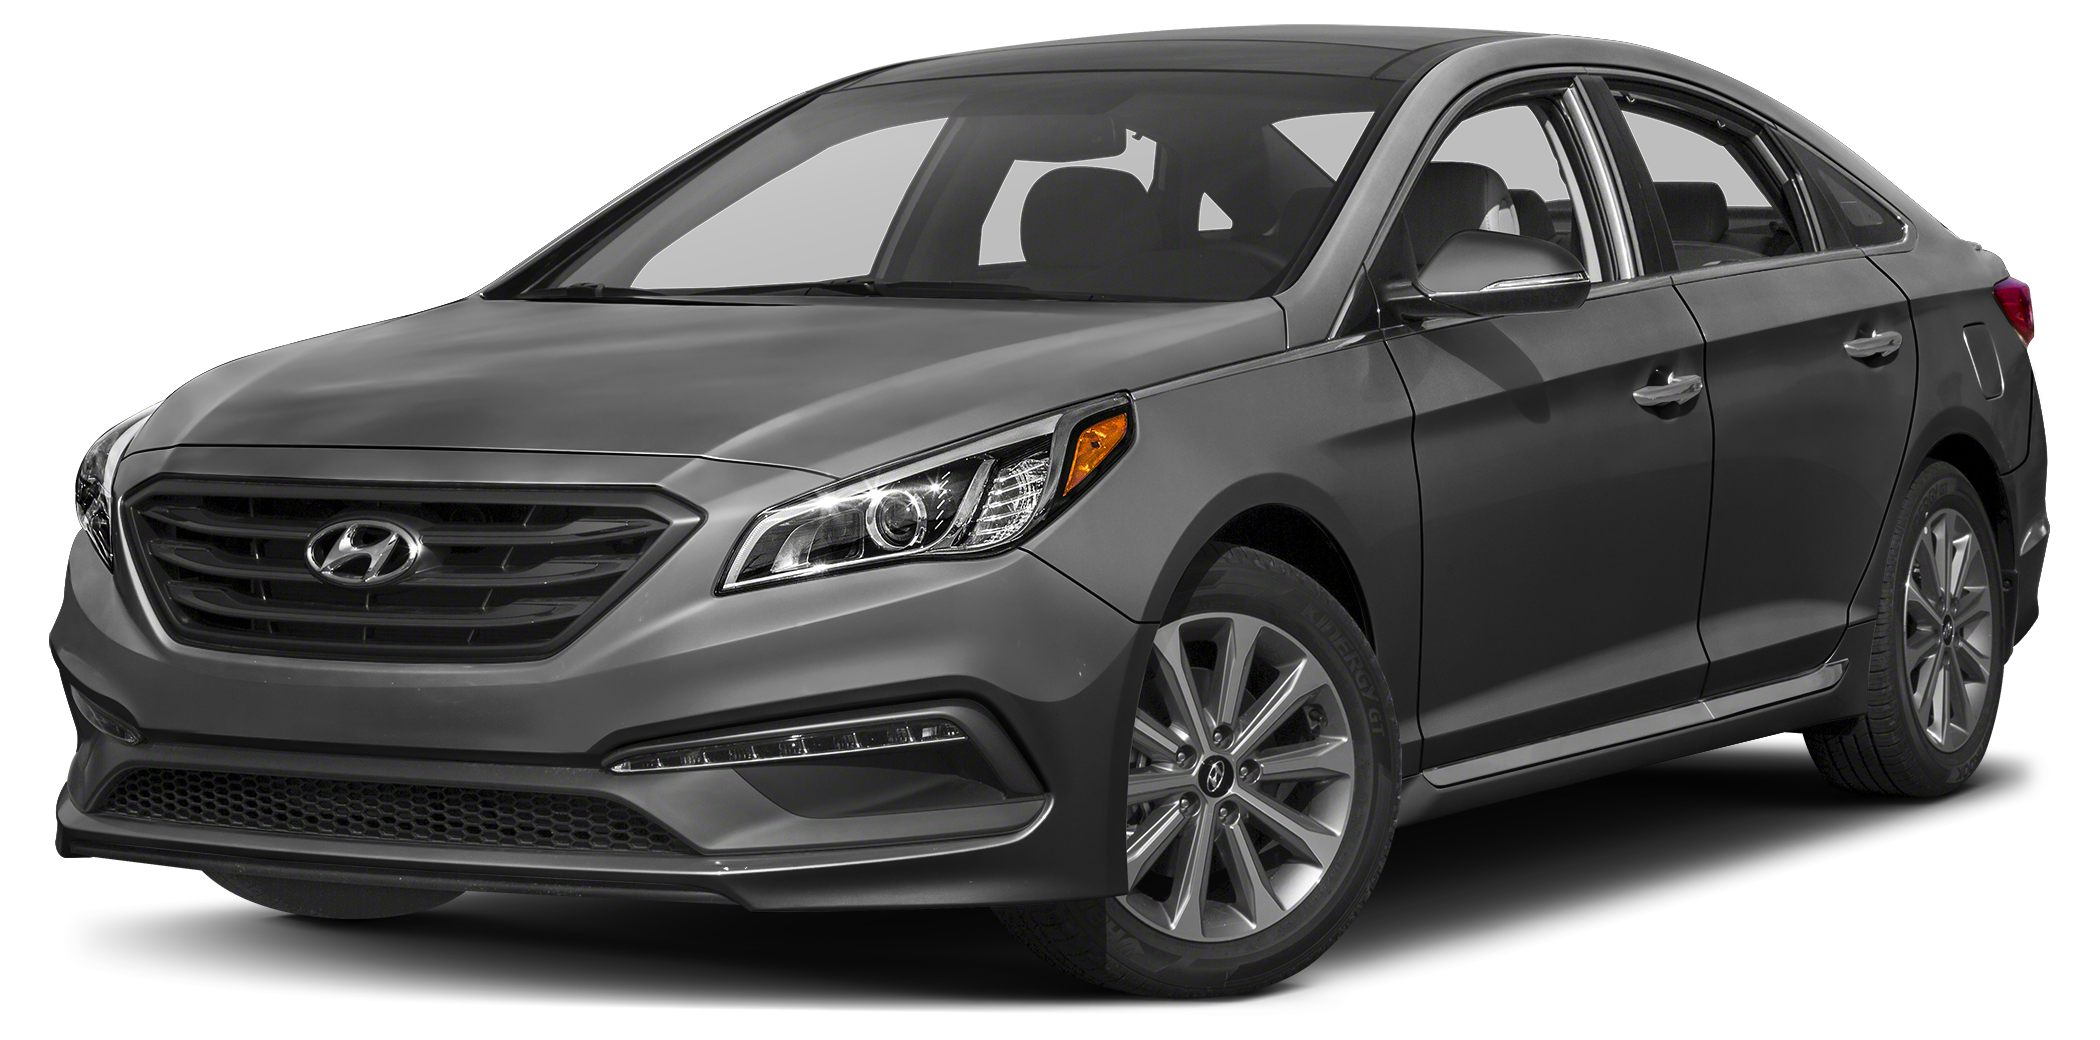 2015 Hyundai Sonata Limited HYUNDAI CERTIFIED -TECH PKG-NAVIGATION-PANOROOF -JUST 10K - One Owner